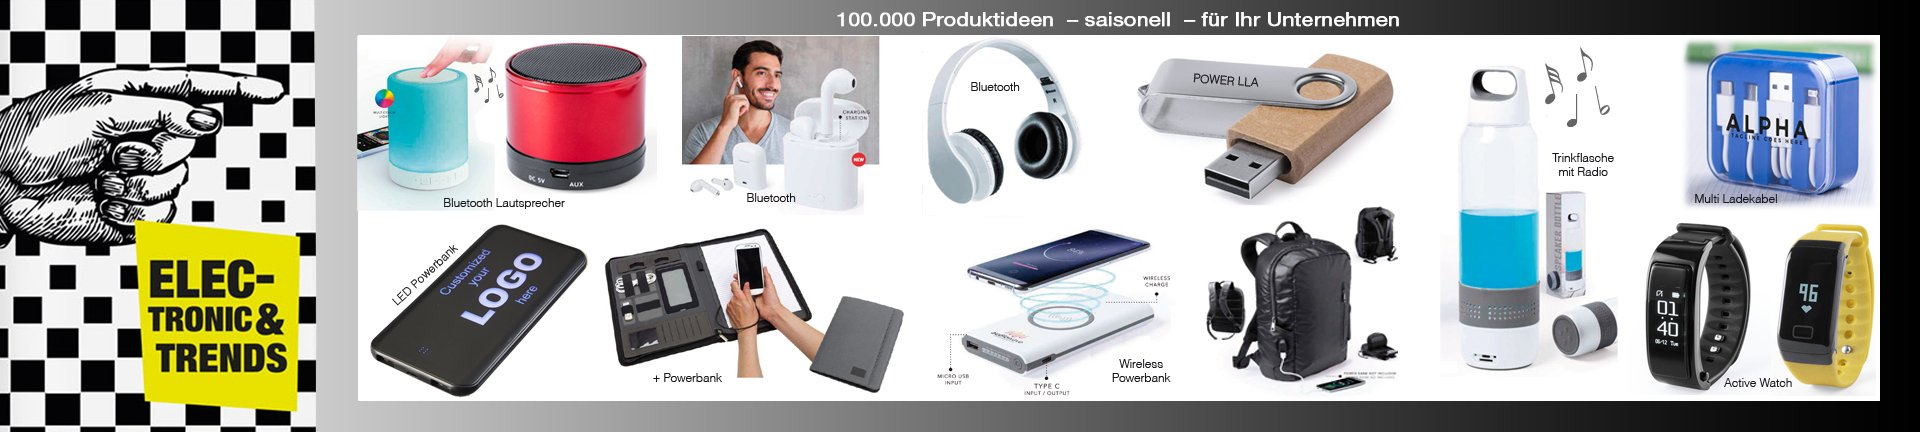 Technologie Trends von JAN Promotion